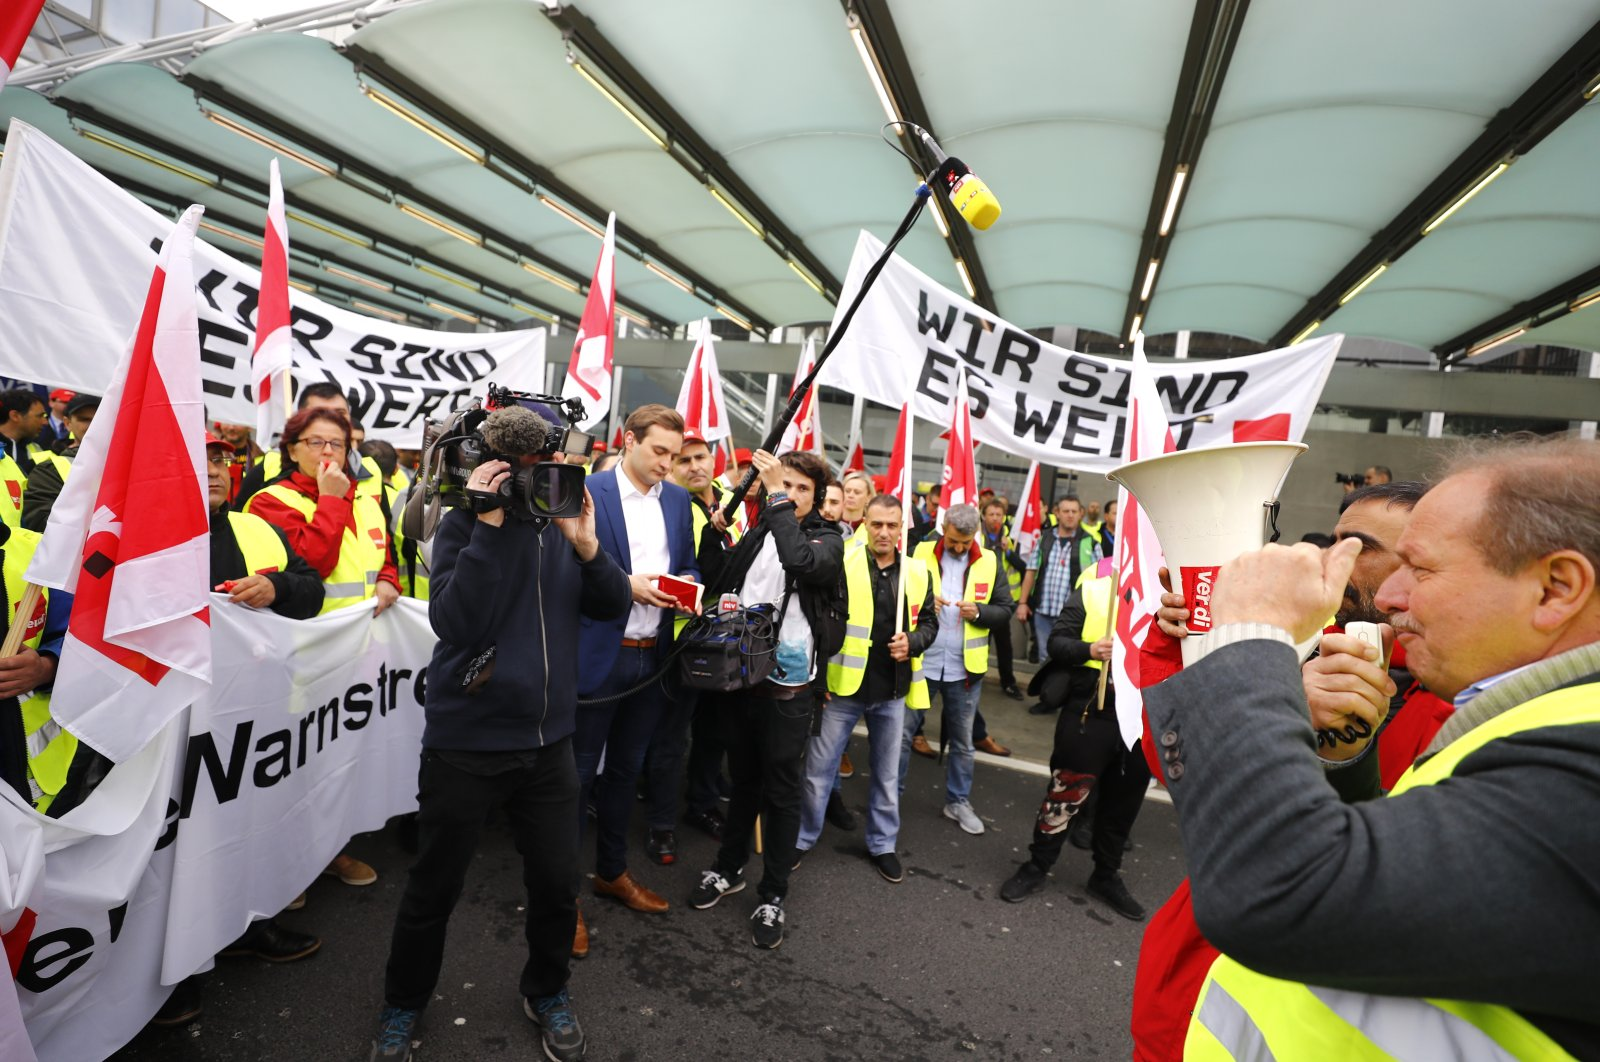 German public sector workers union Verdi leader Frank Bsirske (R) speaks during the strike at the airport in demand for higher wages in Frankfurt, Germany, April 10, 2018. (Reuters Photo)